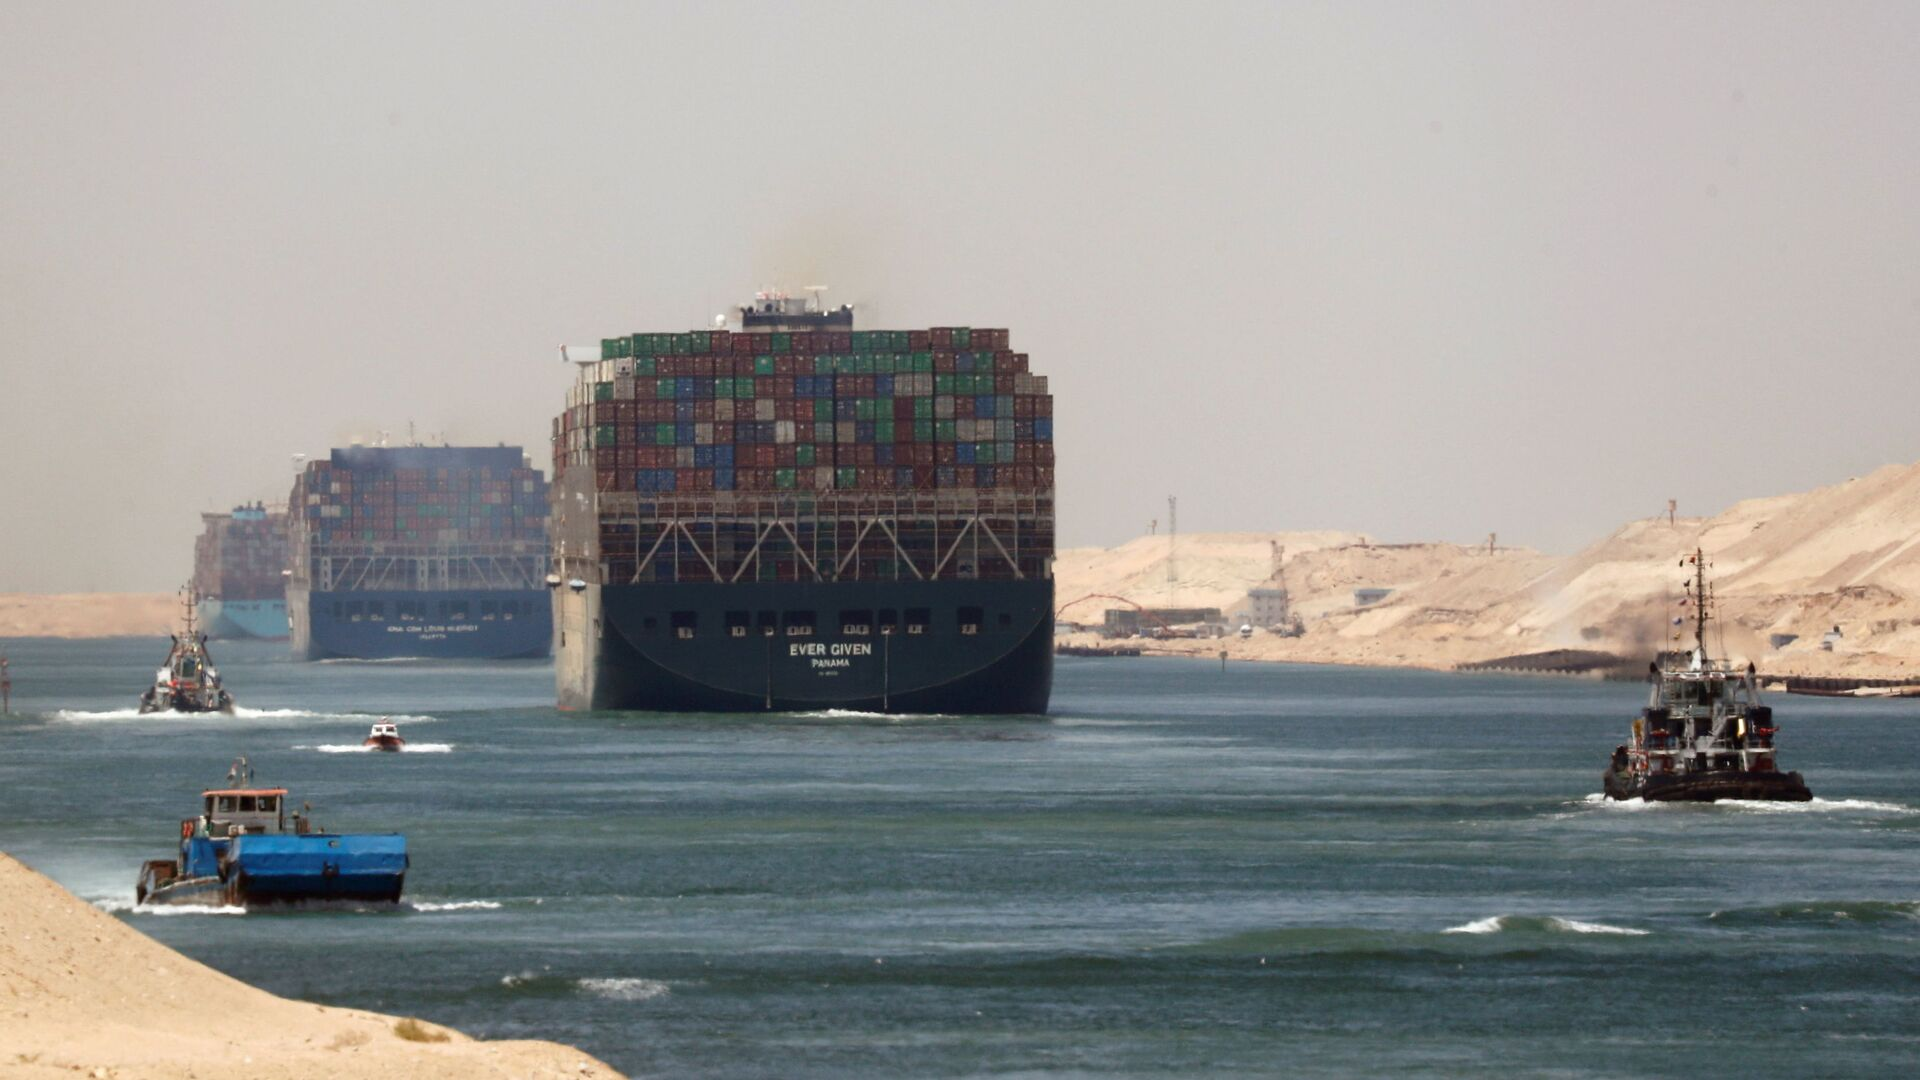 FILE PHOTO: Ever Given, one of the world's largest container ships, sets sail to leave through Suez Canal after the canal authority reached a settlement with the vessel's owner and insurers, in Ismailia, Egypt, July 7, 2021. - Sputnik International, 1920, 09.09.2021